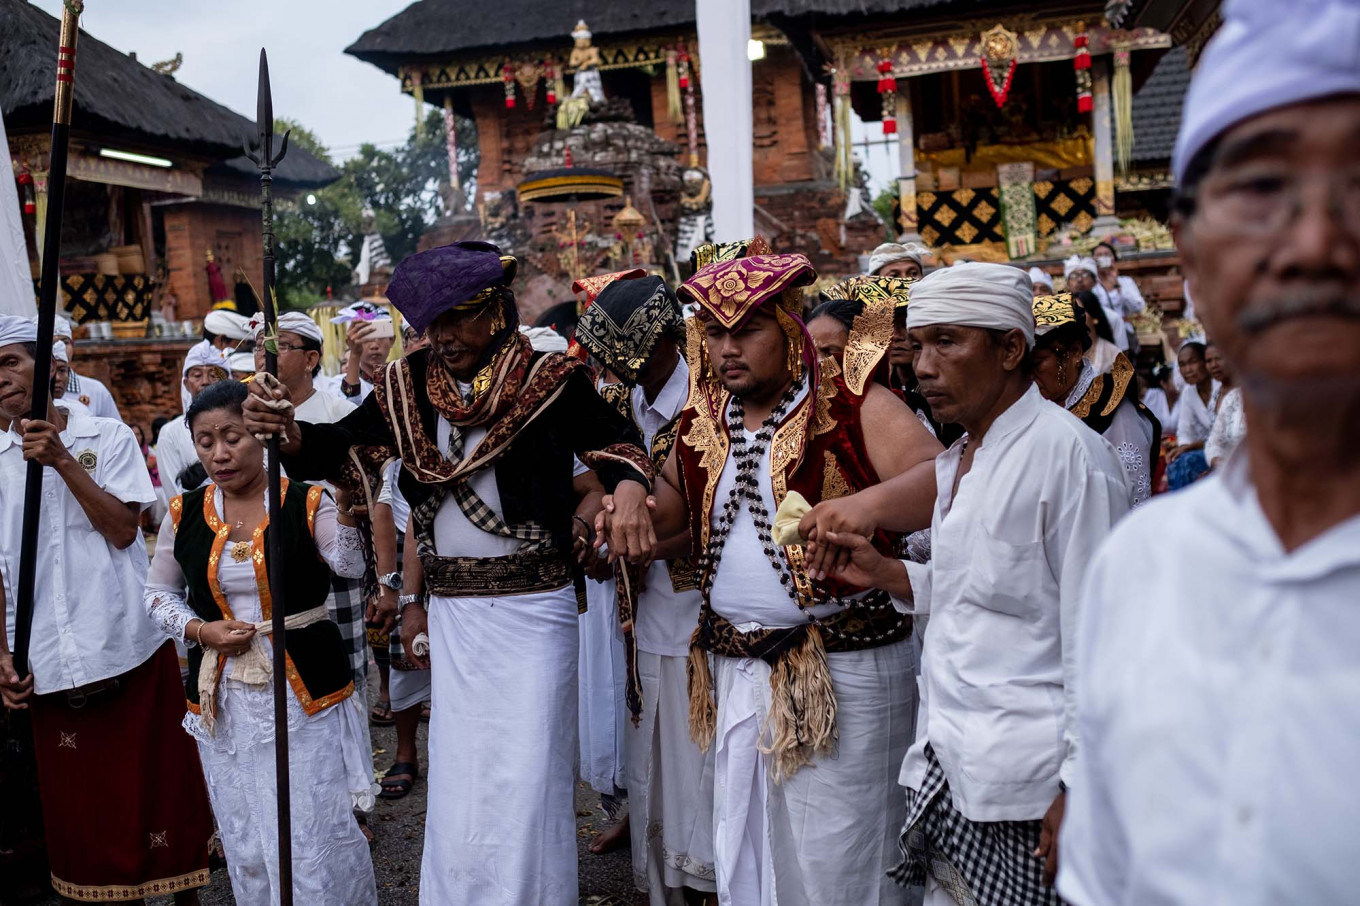 A Balinese man wears an ancient costume during Ngerebong while holding a spear. JP/Agung Parameswara